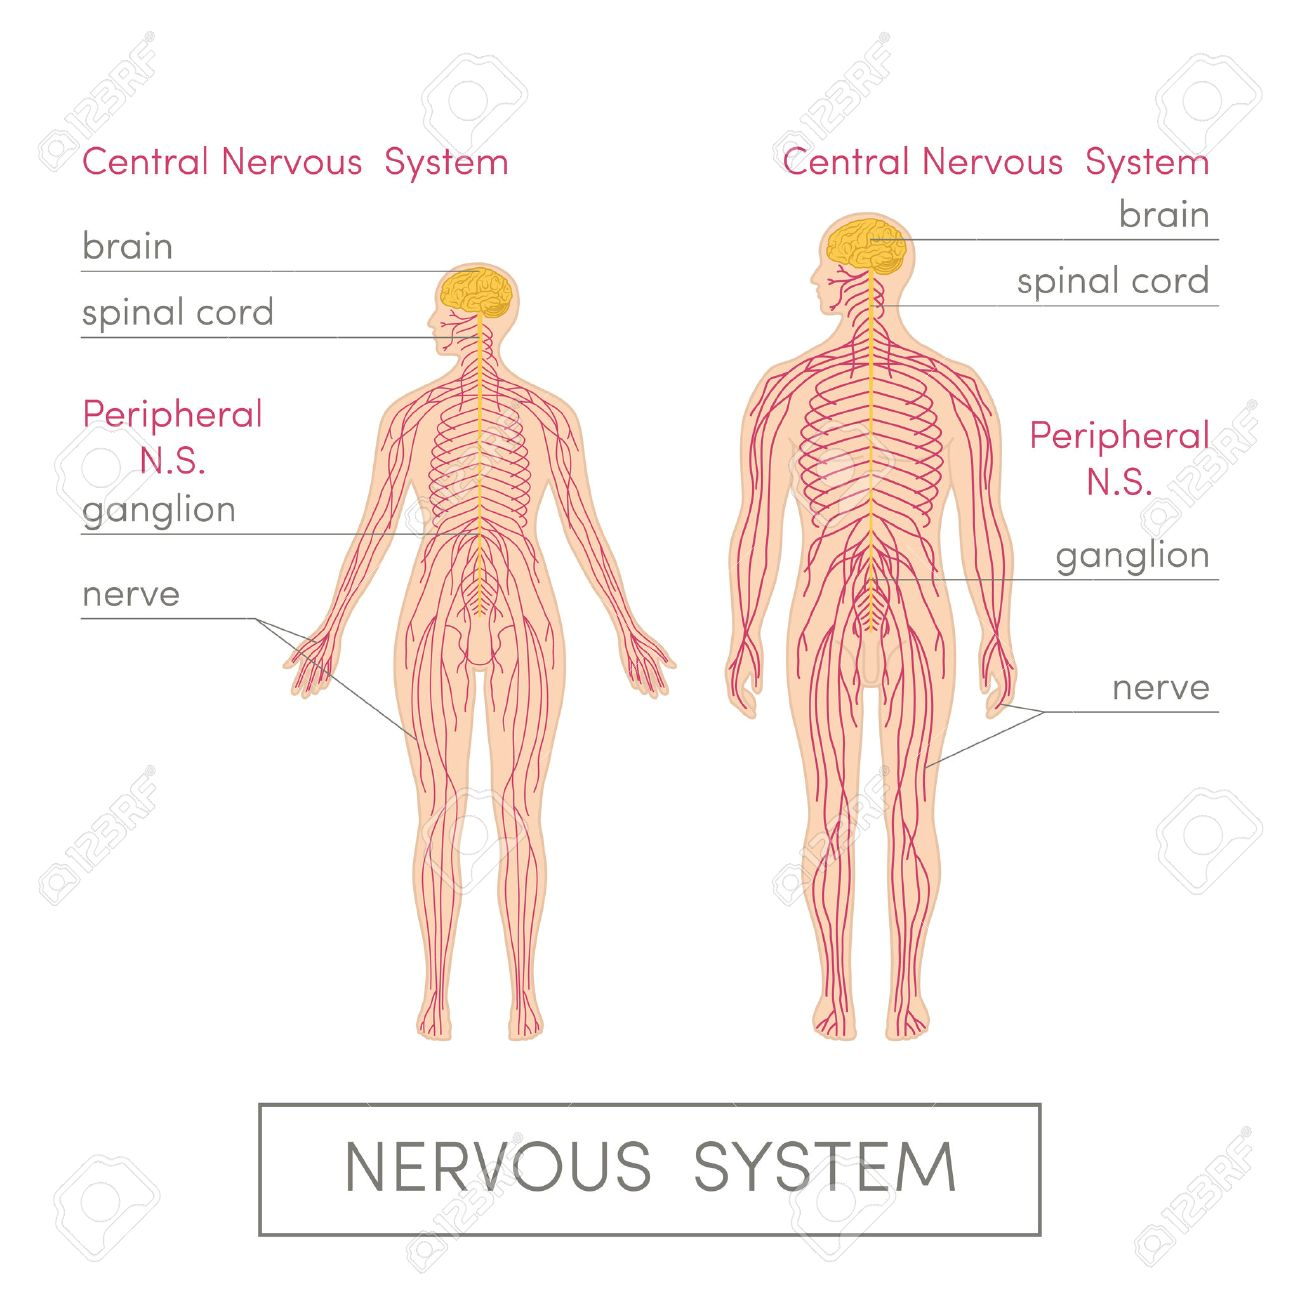 The Nervous System Of A Human Cartoon Vector Illustration For